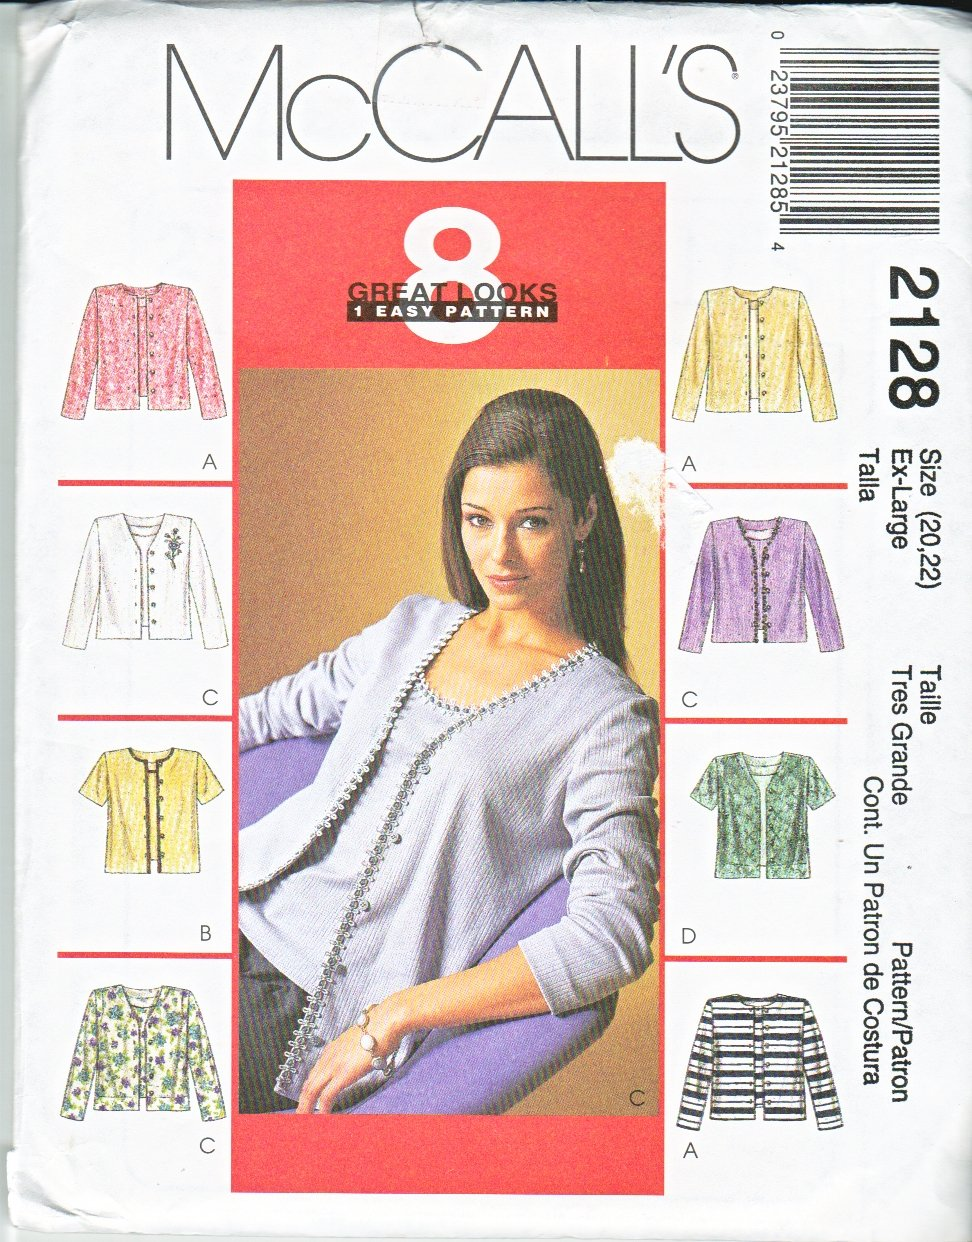 McCall's Sewing Pattern 2128 Misses Size 20-22 Easy Cardigan Top Shell Twin Set